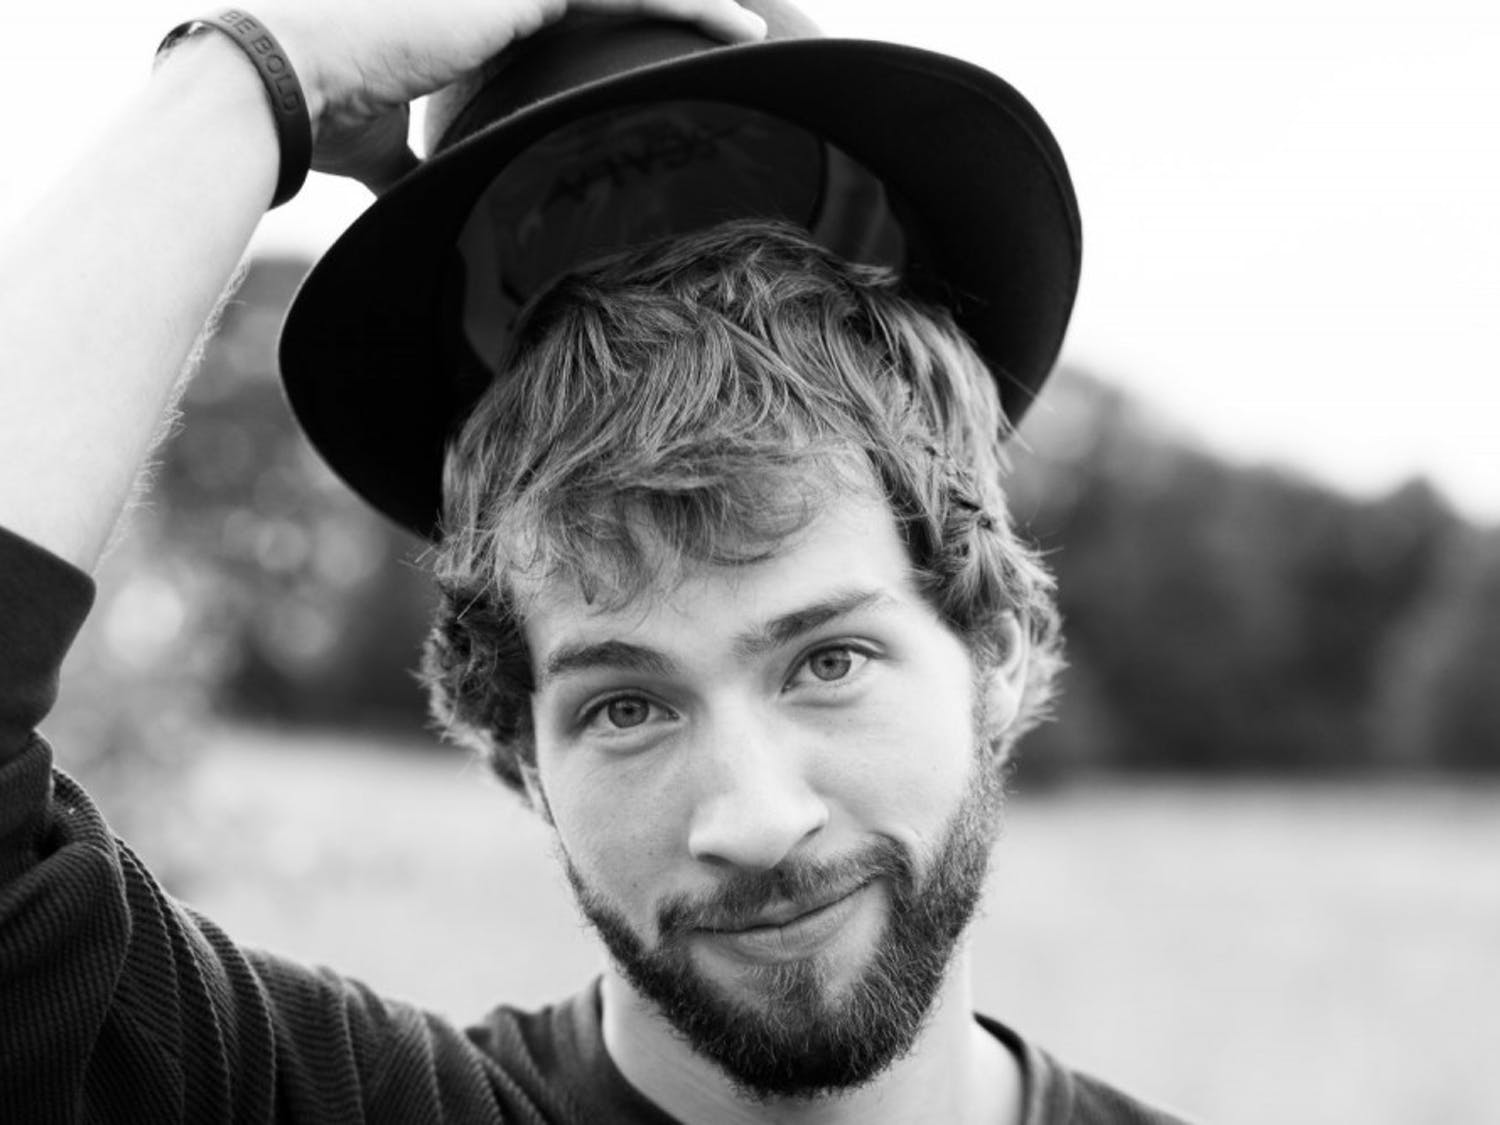 Sam Burchfield is a singer-songwriter based in Atlanta. Photo courtesy of Andy Kahn.